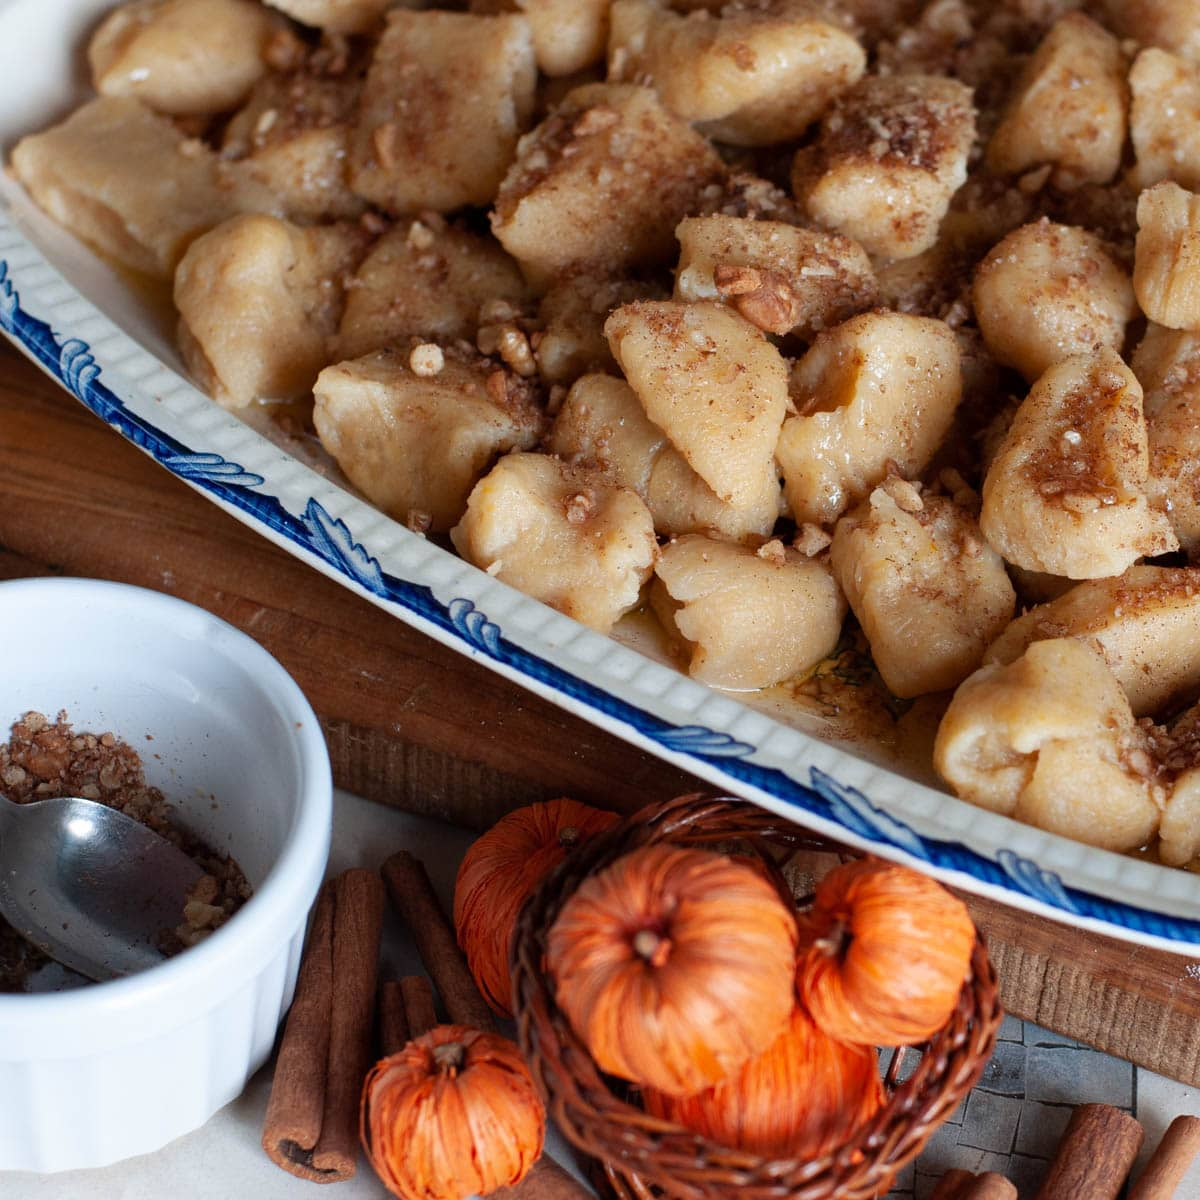 Pumpkin Gnocchi With Cinnamon